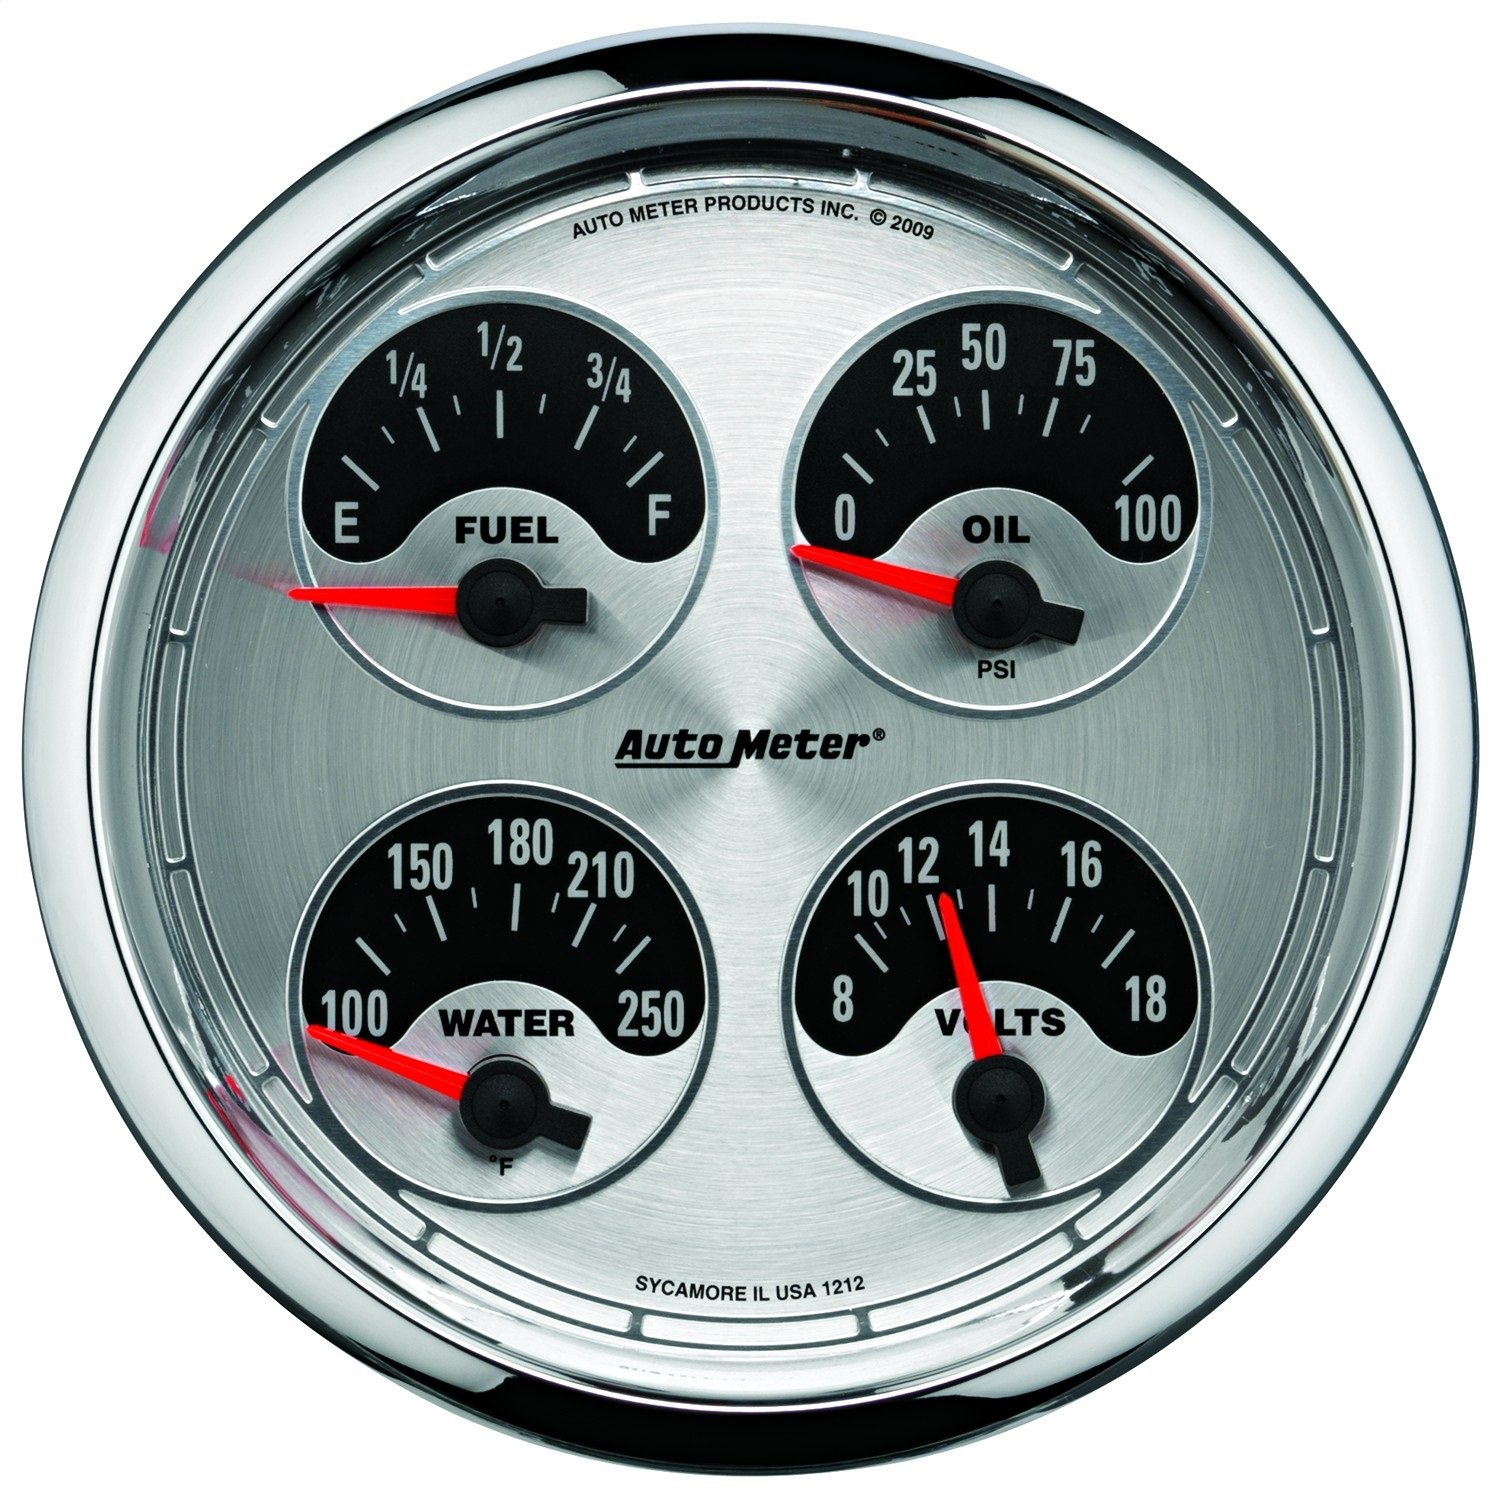 AutoMeter 9105 Ecometer Fuel Consumption Gauge